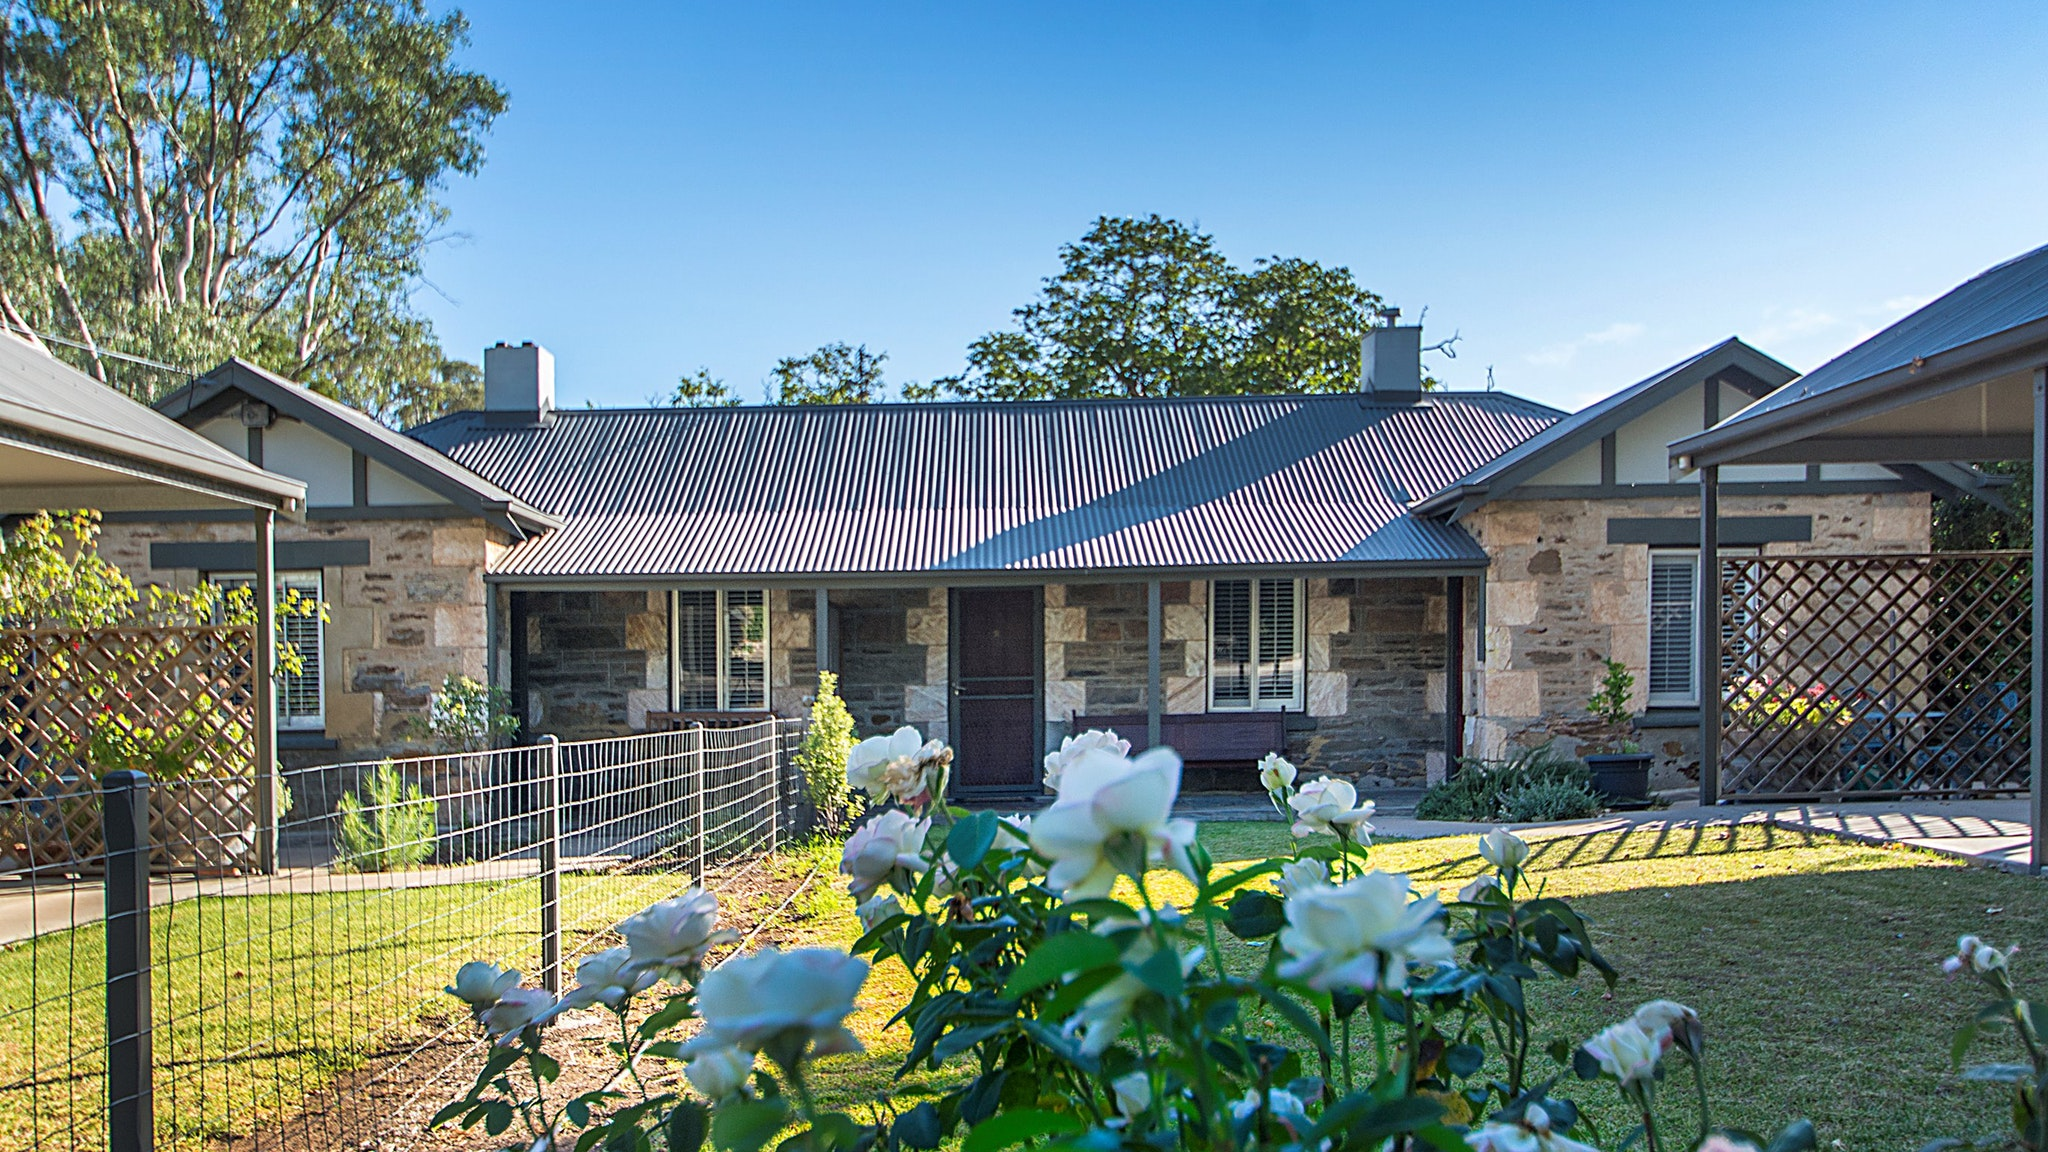 Stoneleigh Cottage Bed and Breakfast - Accommodation in Bendigo